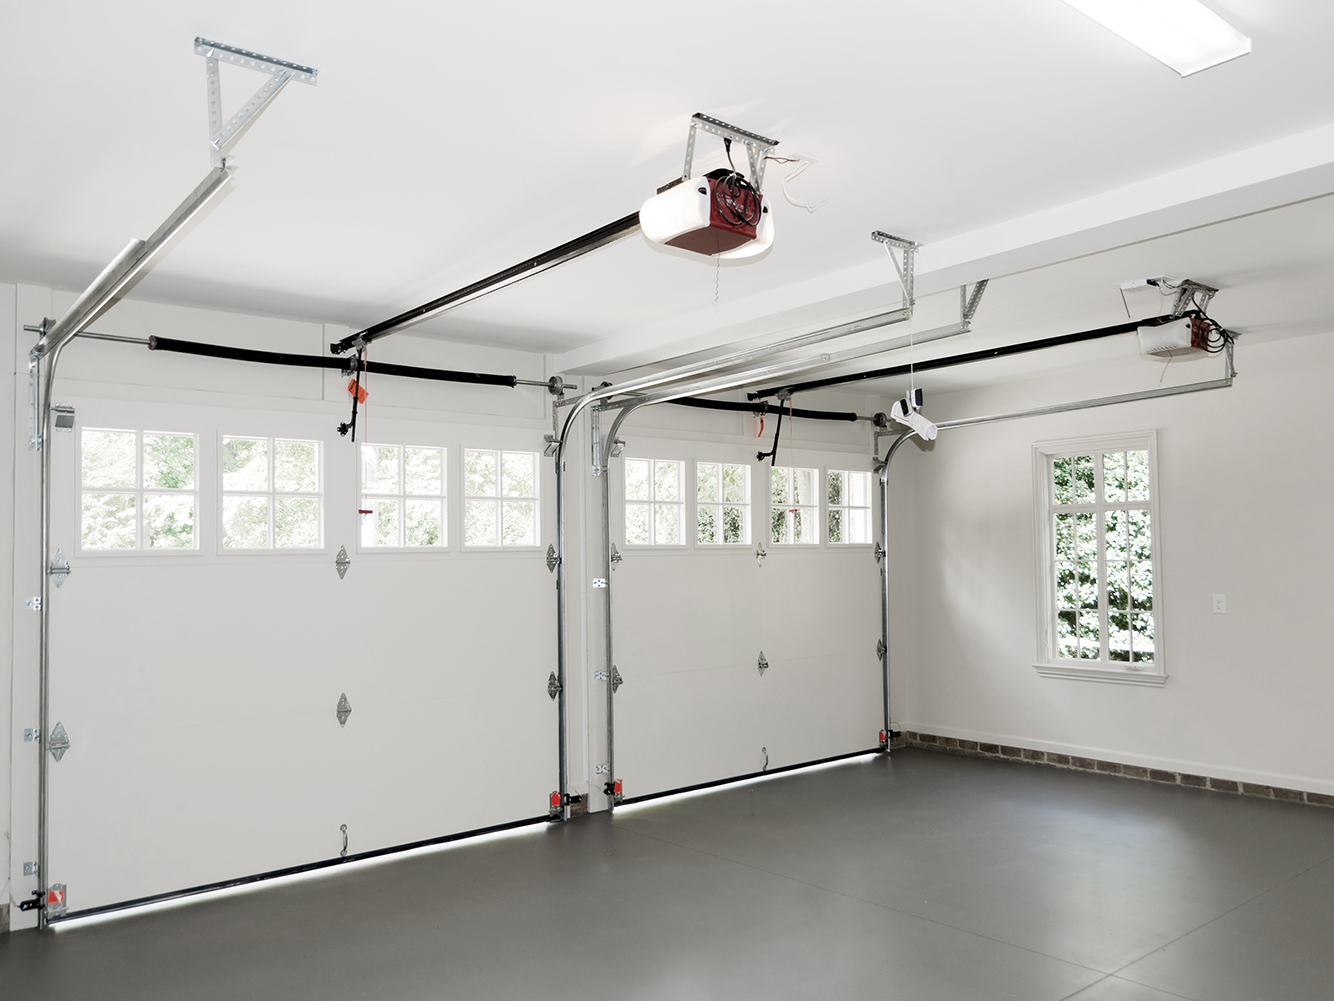 Garage Door Repair Queen Creek Az Jdt Garage Door Service Mesa Az Garage Door Repair